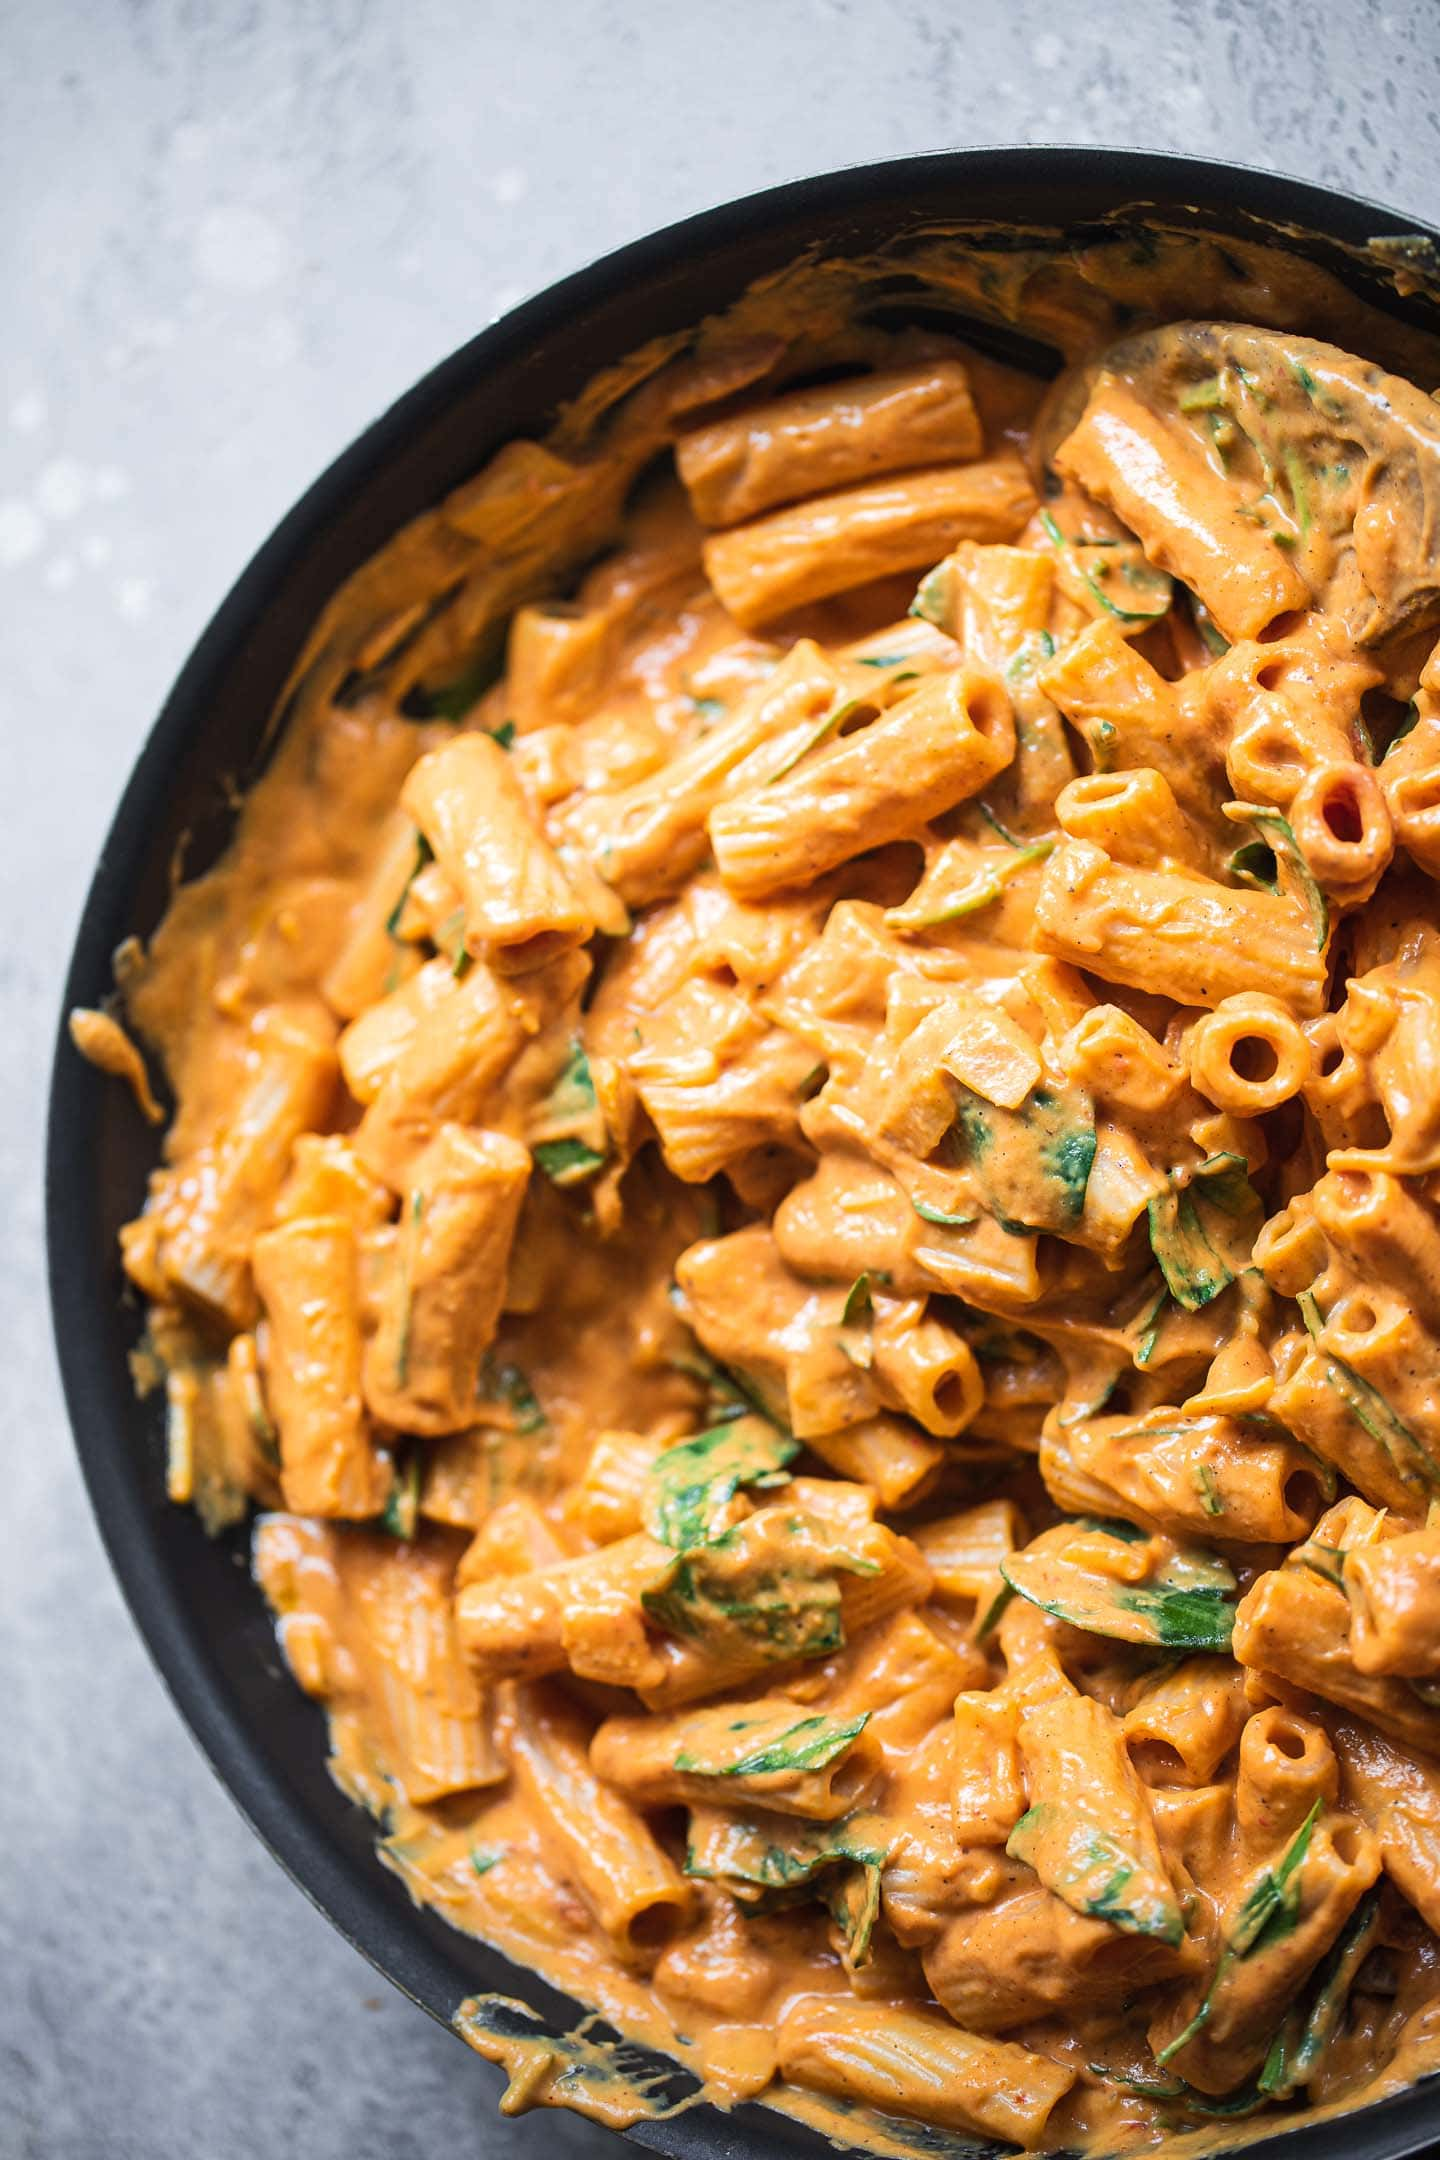 Pasta with a butternut squash and spinach in a pan